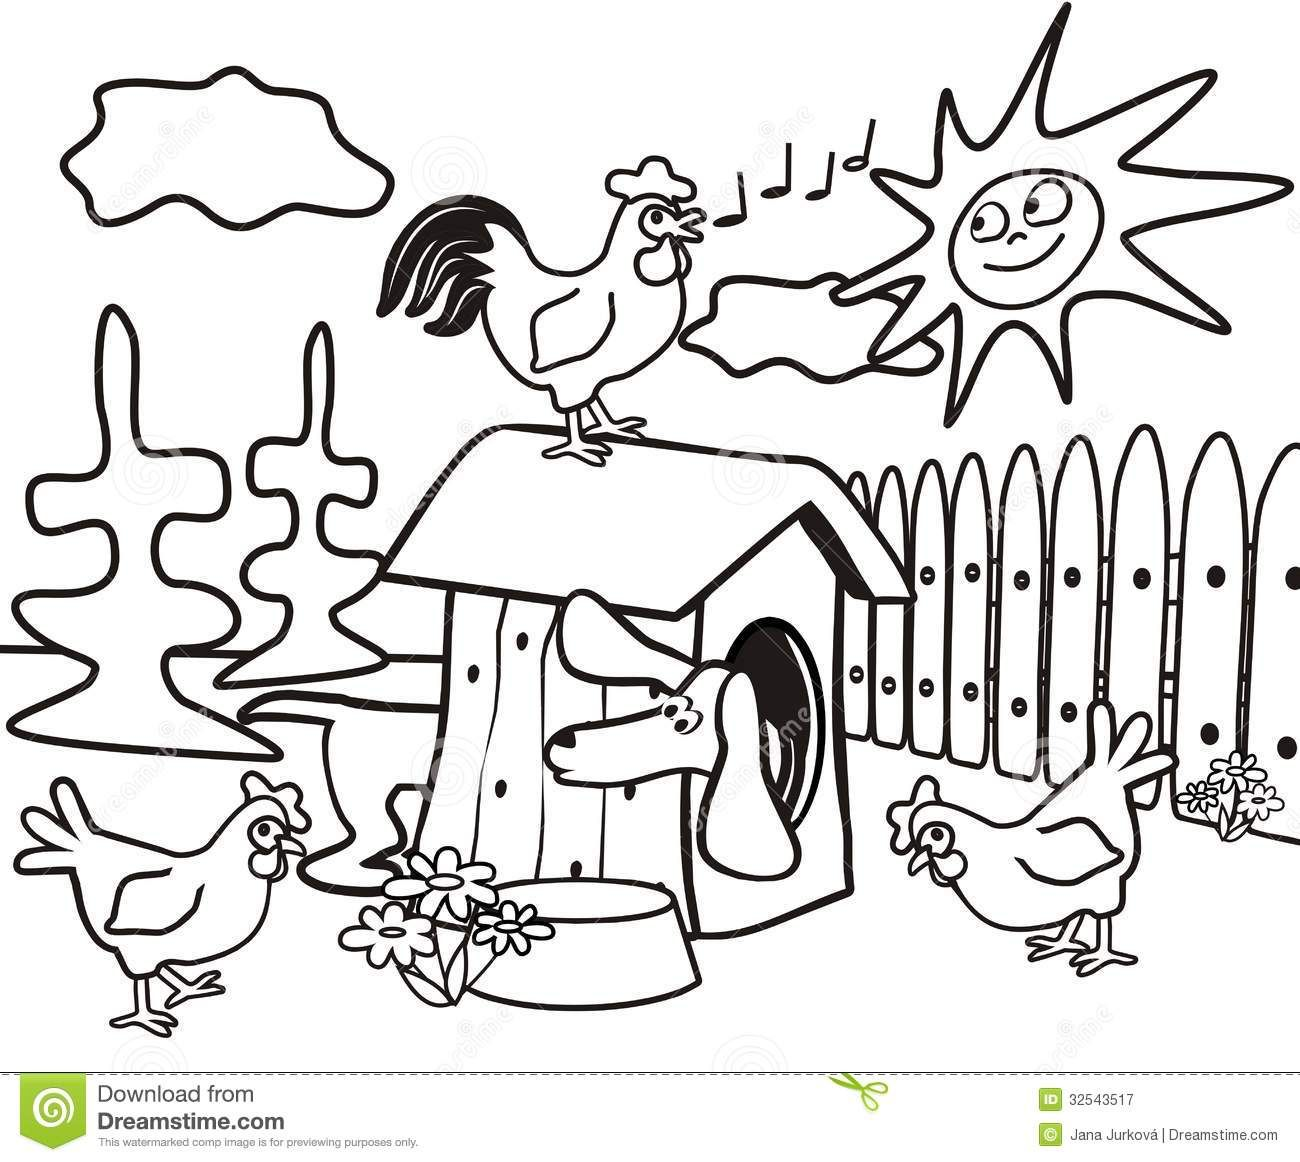 Uncategorized Kids Coloring Books dachshund coloring book kids dog cock hens 32543517 jpg 32543517